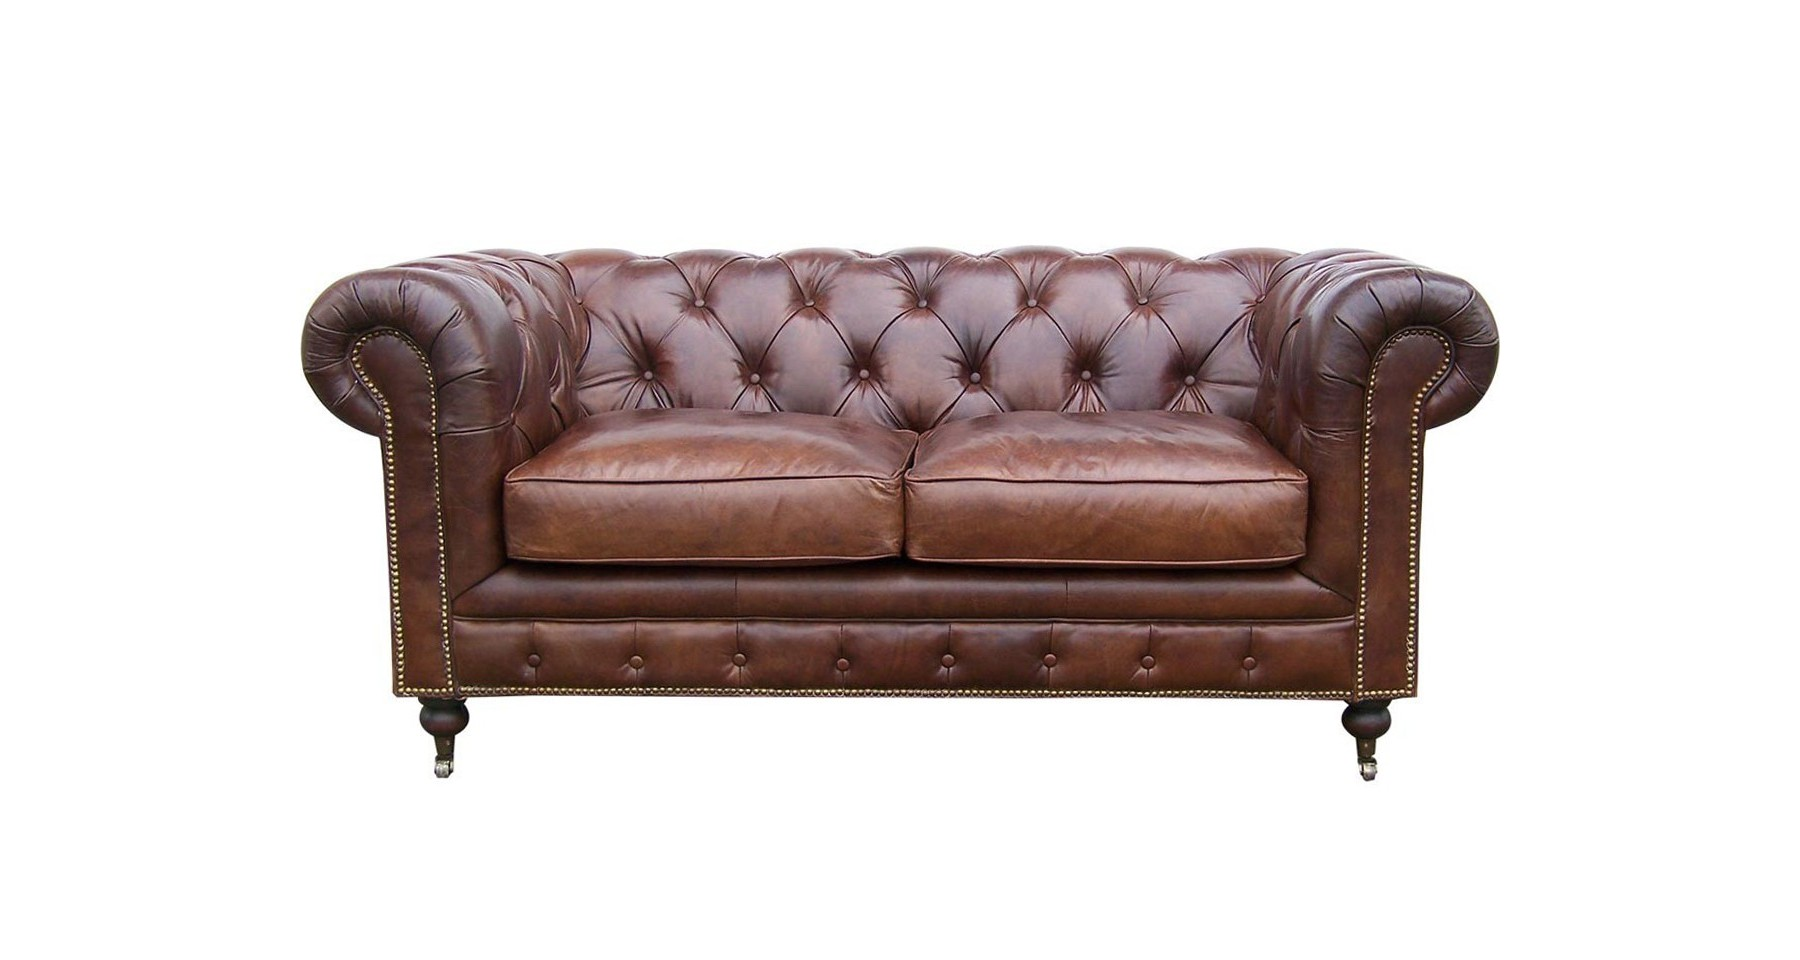 Canape Cuir Marron 2 Places Canapé Chesterfield 2 Places En Cuir Pleine Fleur Marron